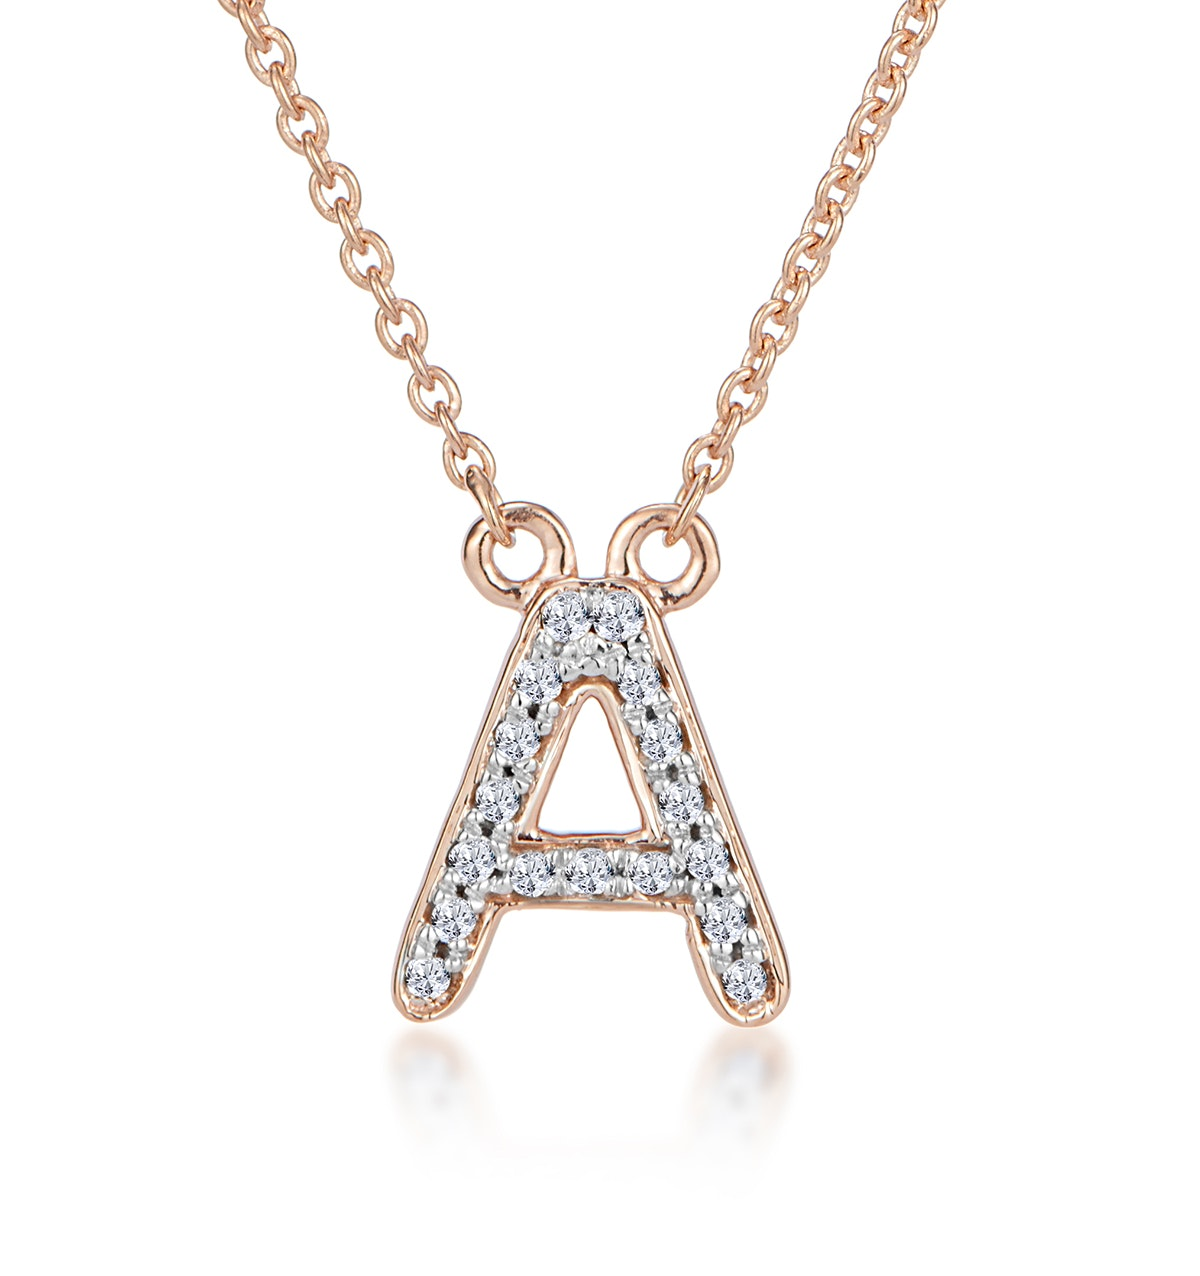 Initial 'A' Necklace Diamond Encrusted Pave Set in 9K Rose Gold